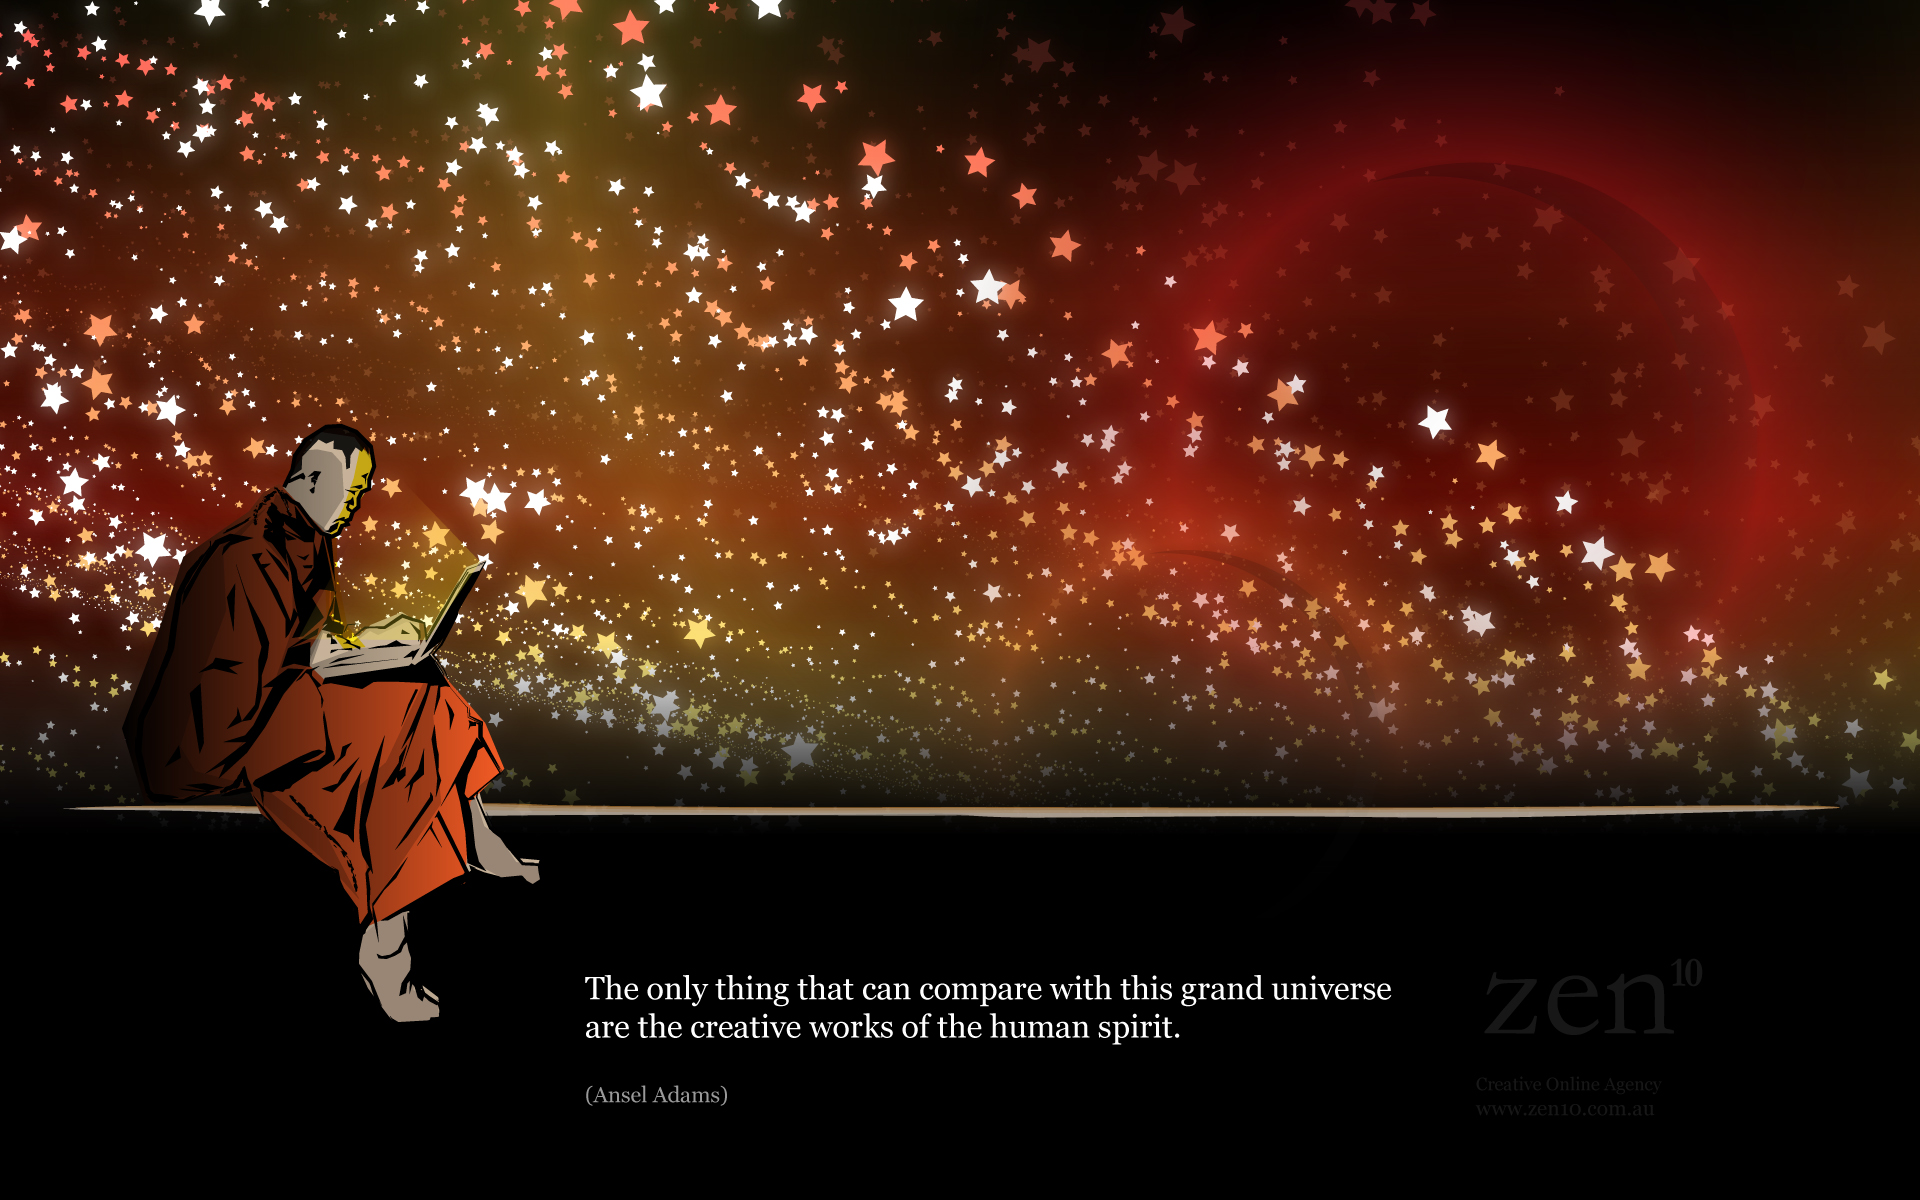 Download Zen10 Inspiration Wallpaper 1280 X 1024 JPG 768